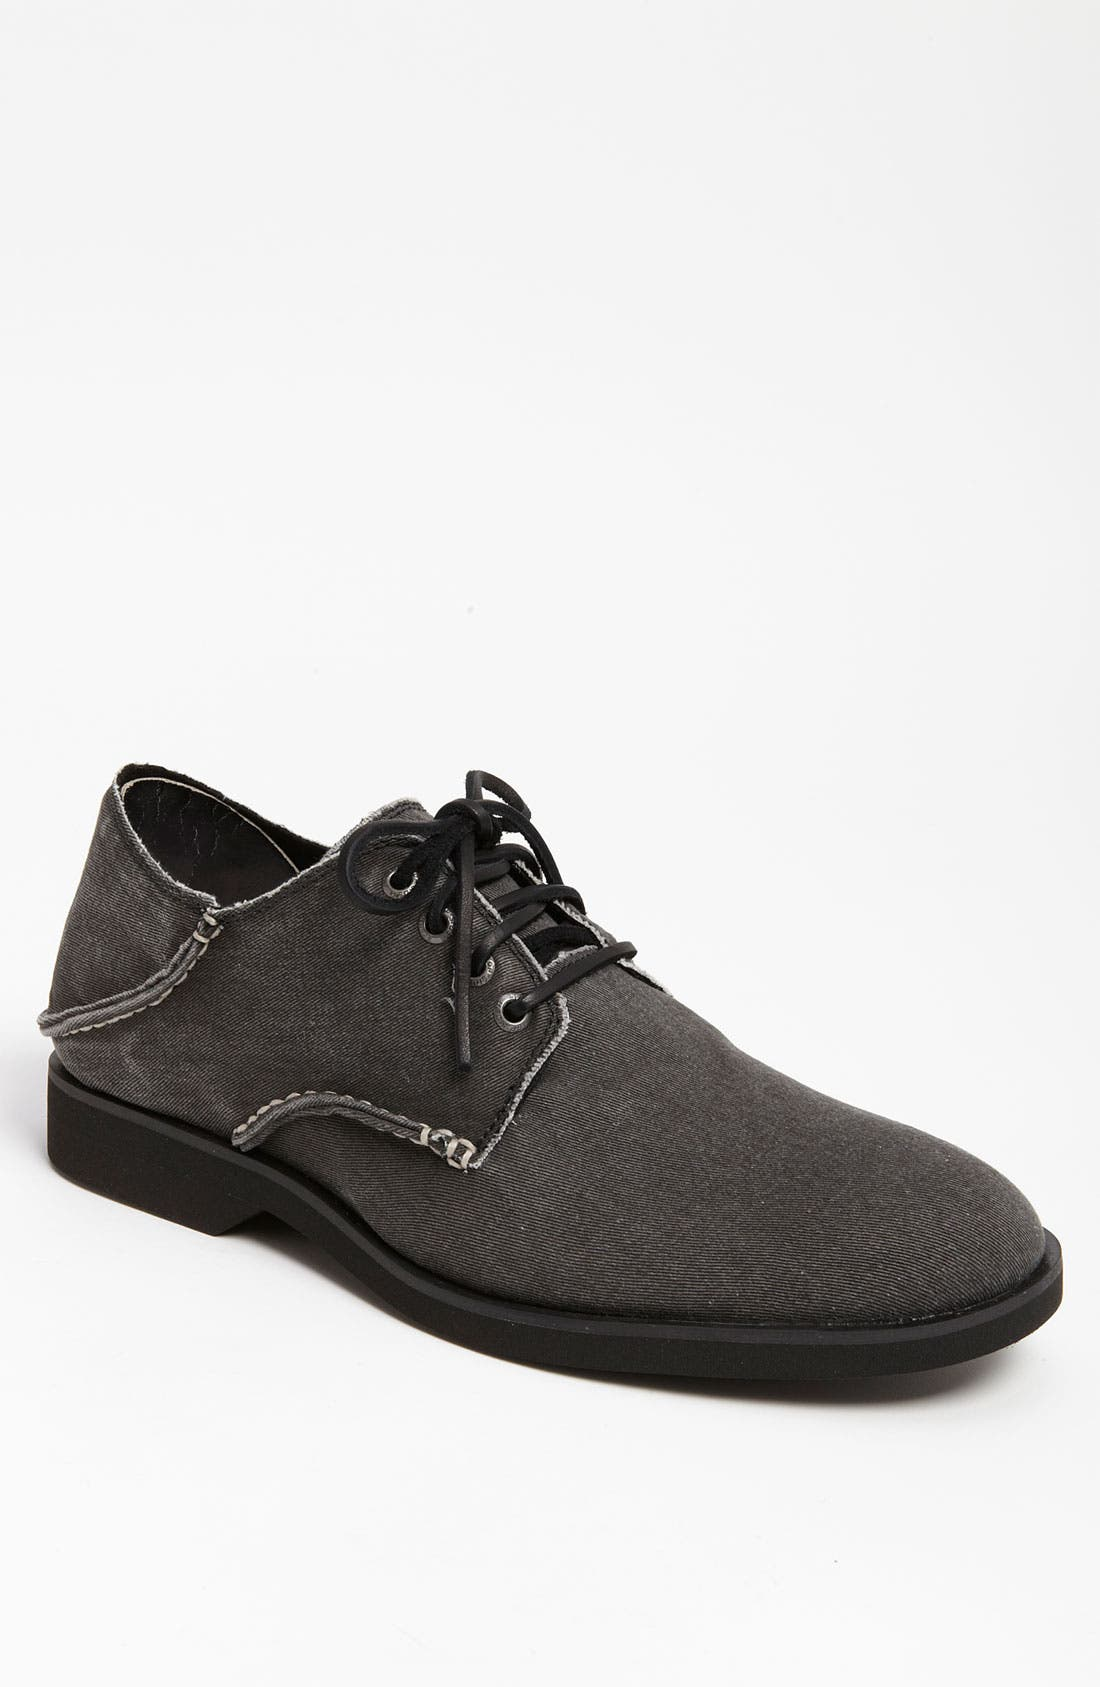 Main Image - Sperry Top-Sider® 'Boat' Oxford